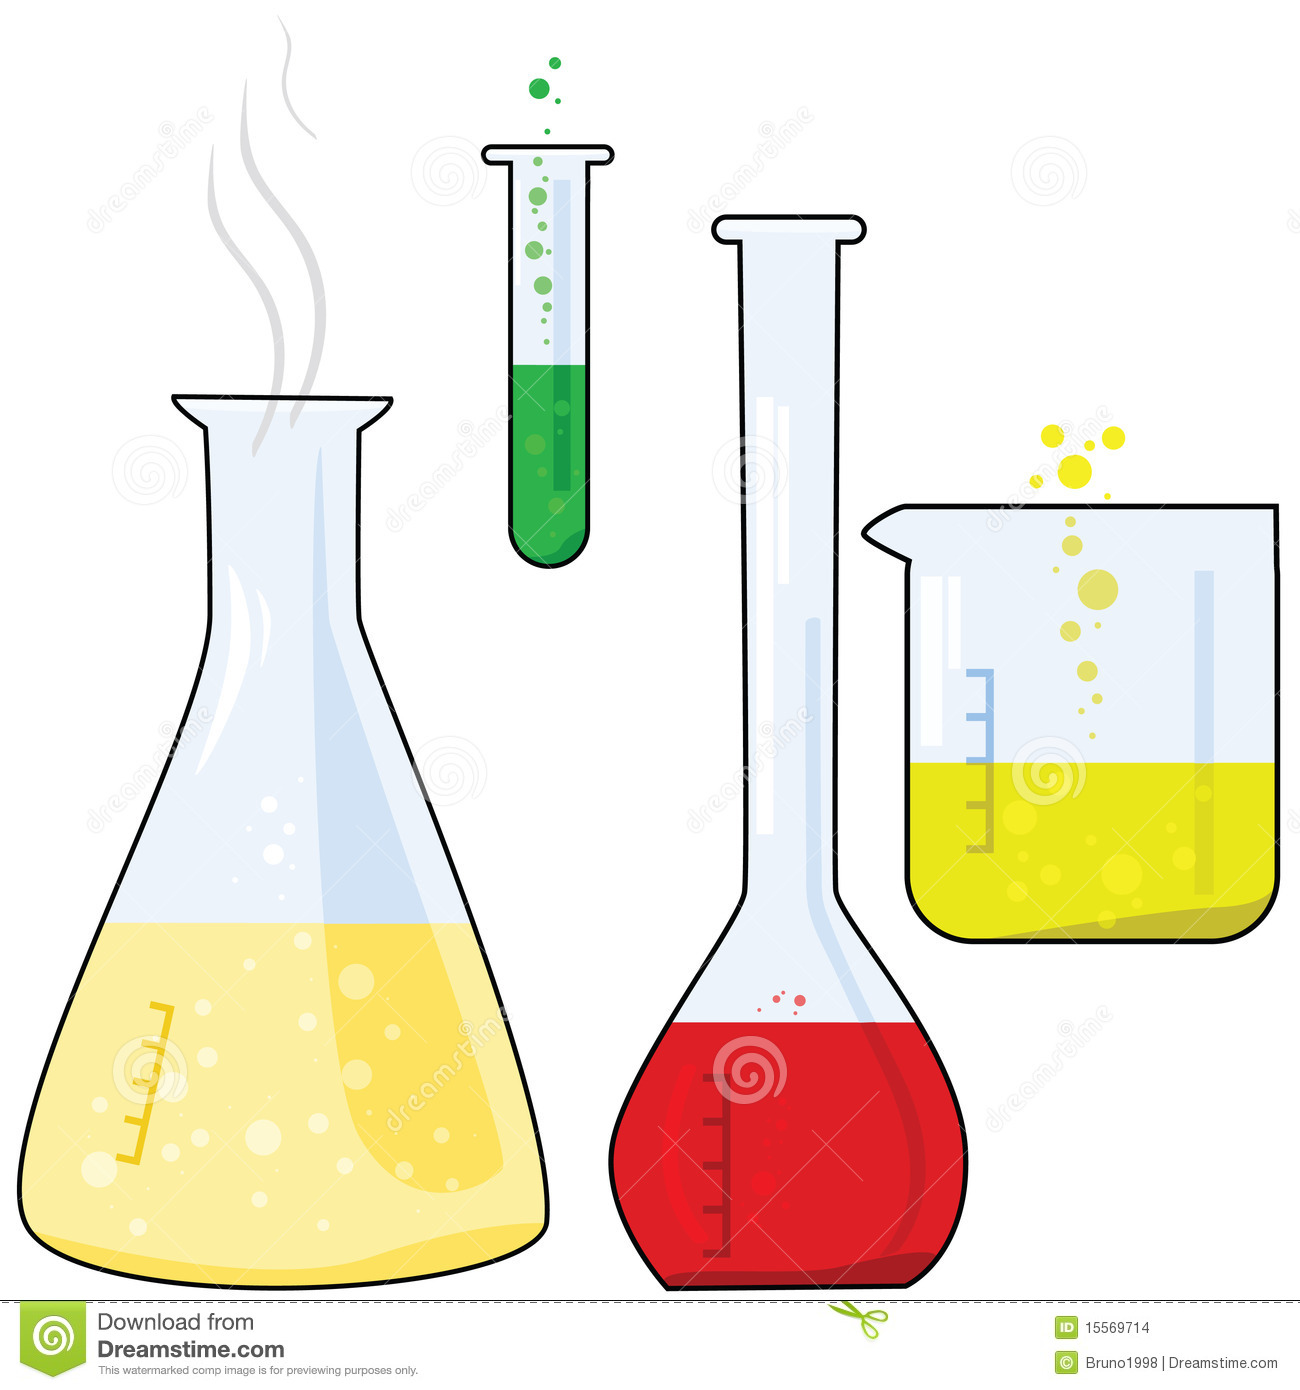 Chemistry lab equipment clipart laboratory equipment 15569714